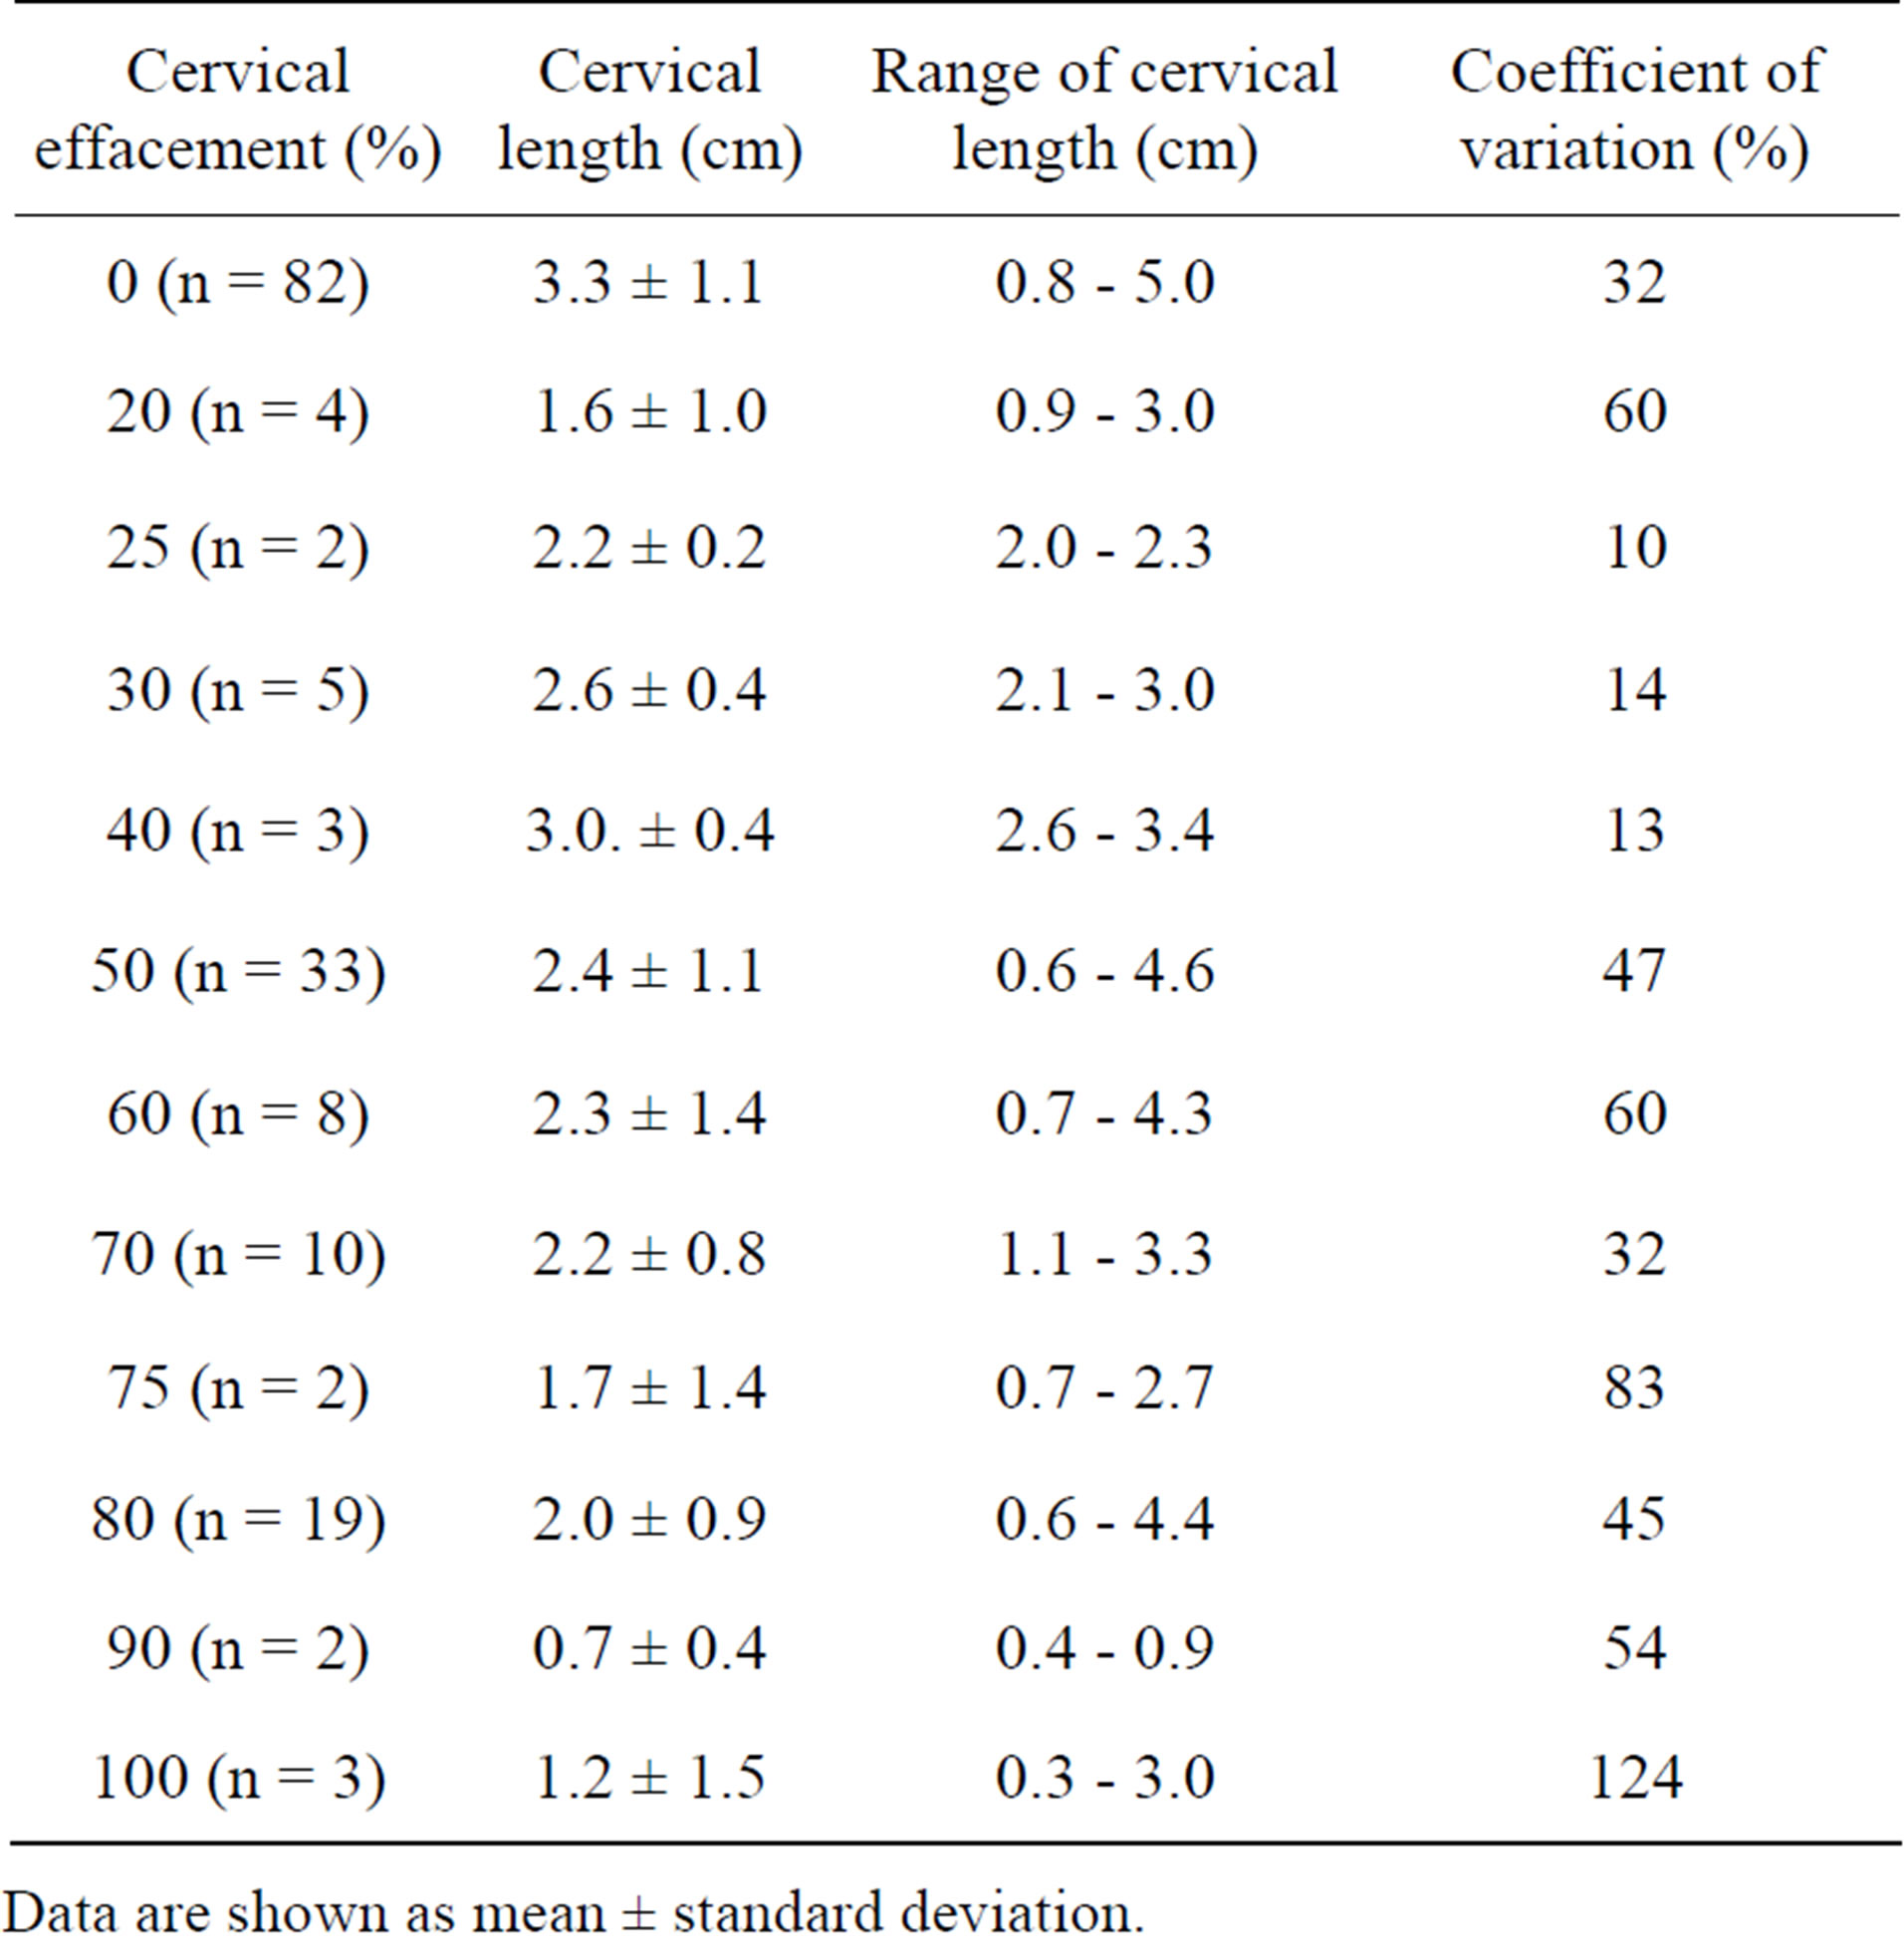 Table 2. Vaginal probe ultrasound of cervical length vs percent cervical  effacement by pelvic examination.